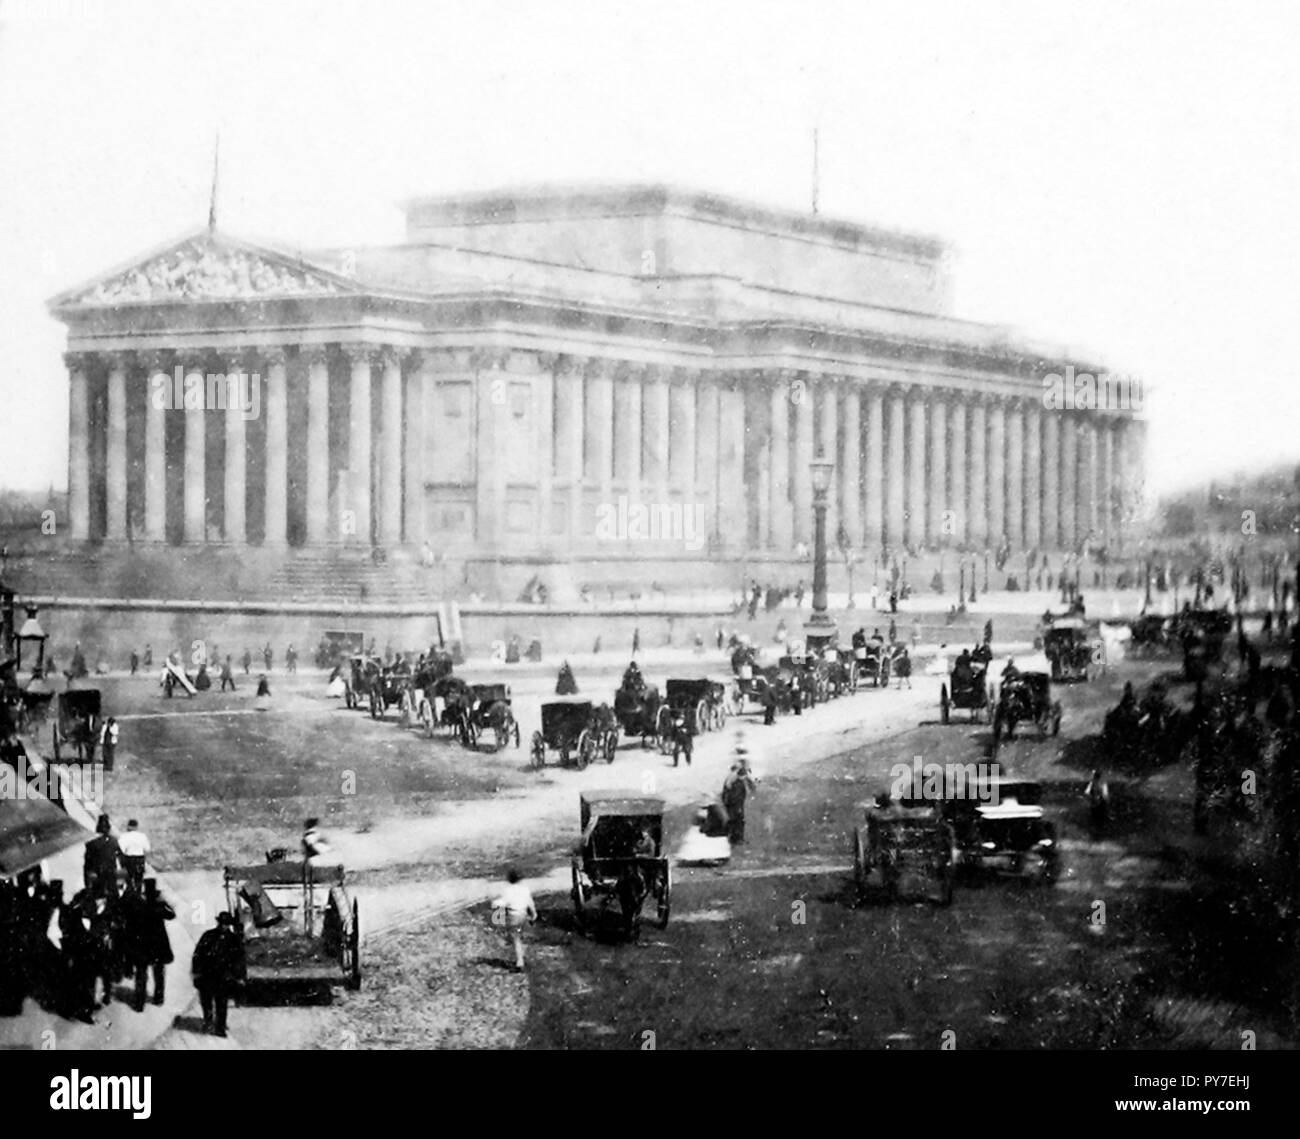 St. George's Hall, Liverpool in the 1870s - Stock Image